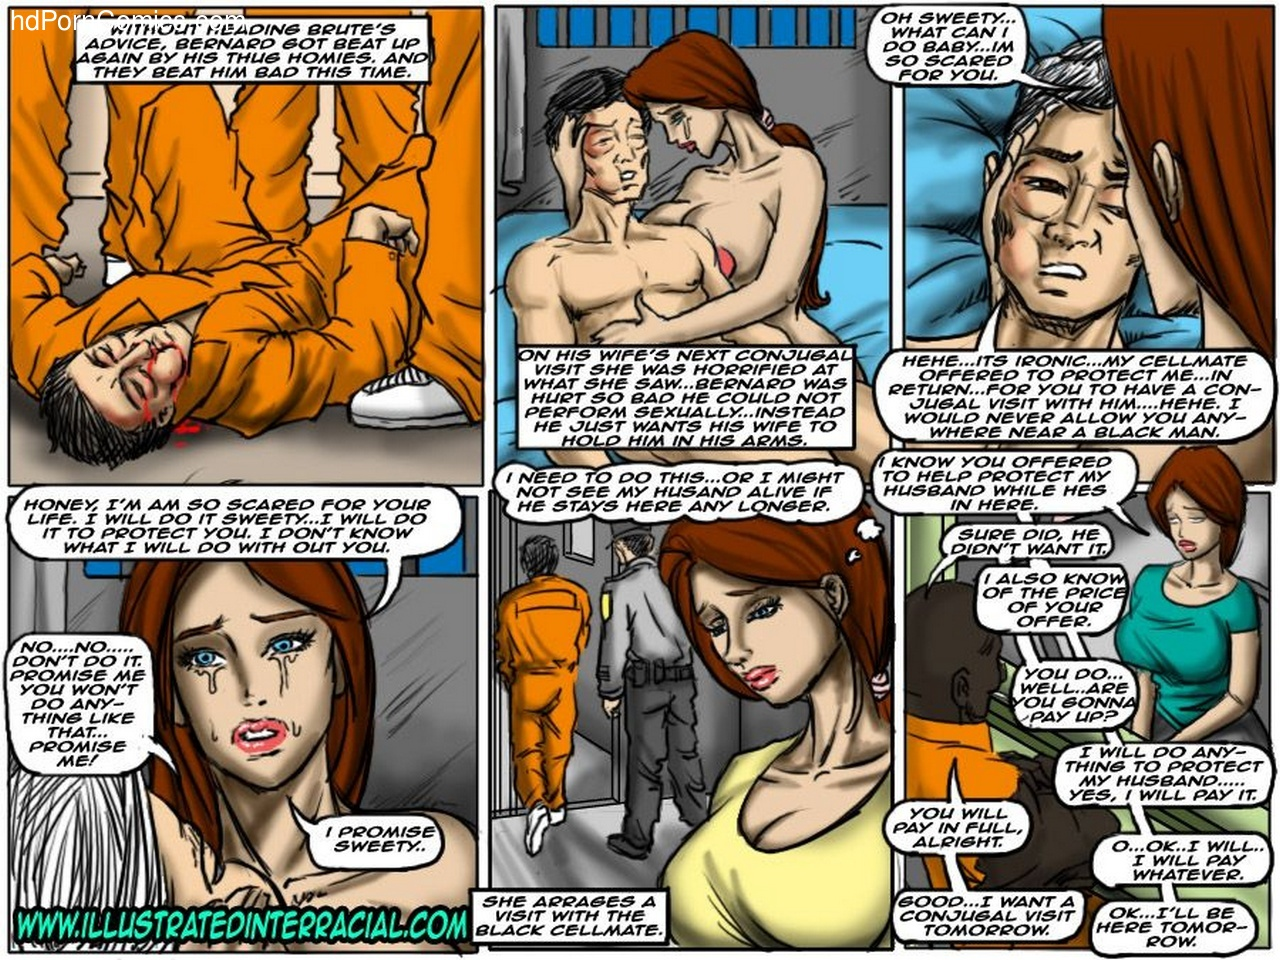 Wife-Gets-Pounded-While-Husband-s-Impounded4 free sex comic